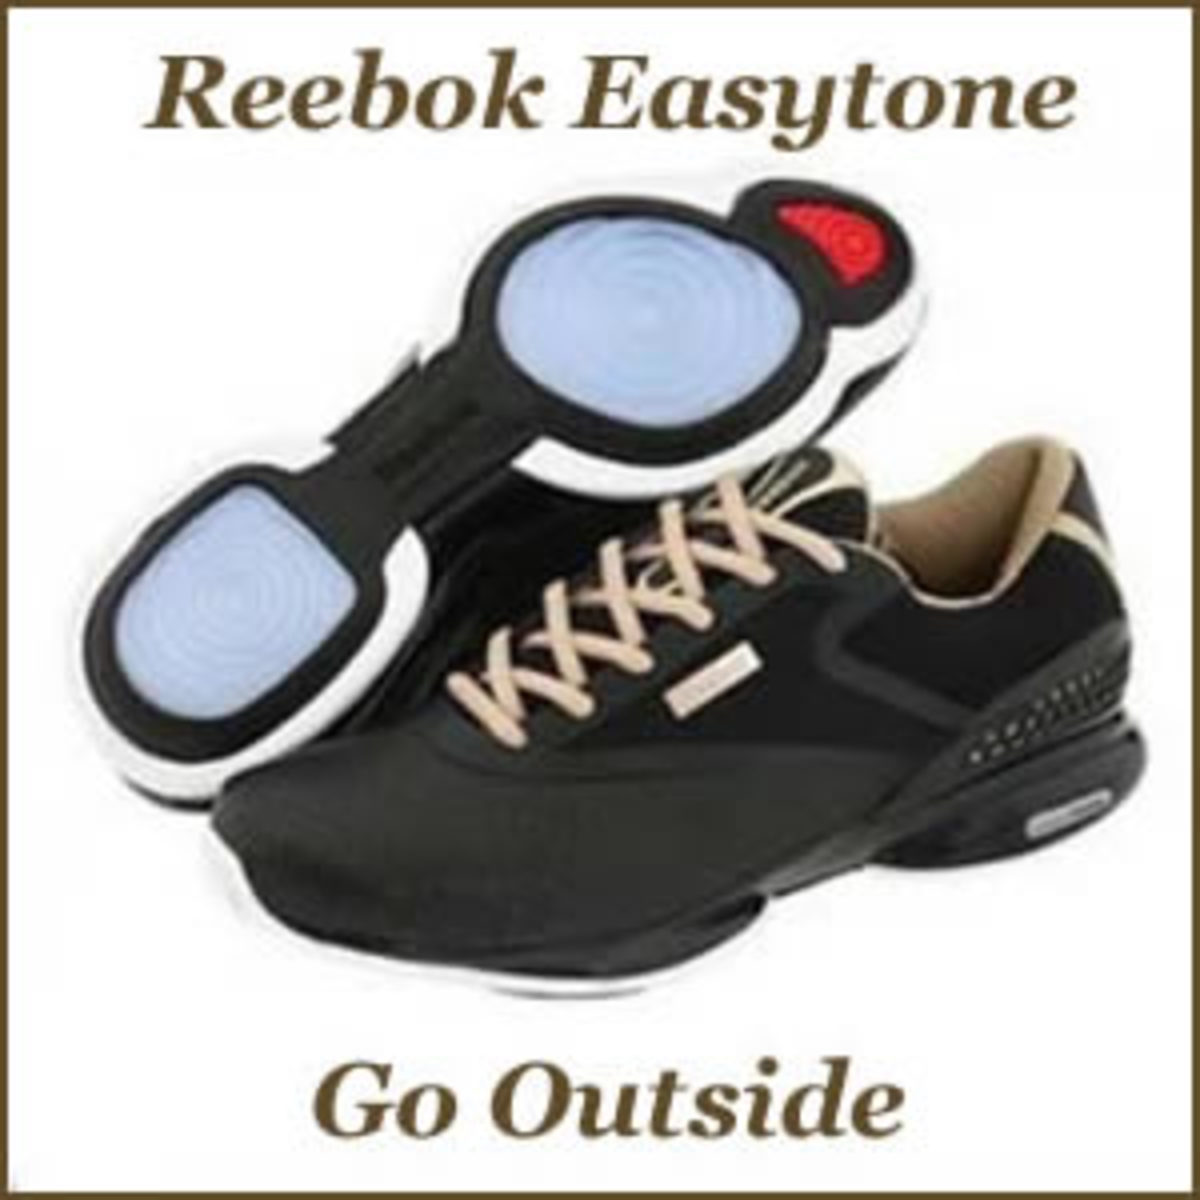 Reebok Easytone styles just get better and better